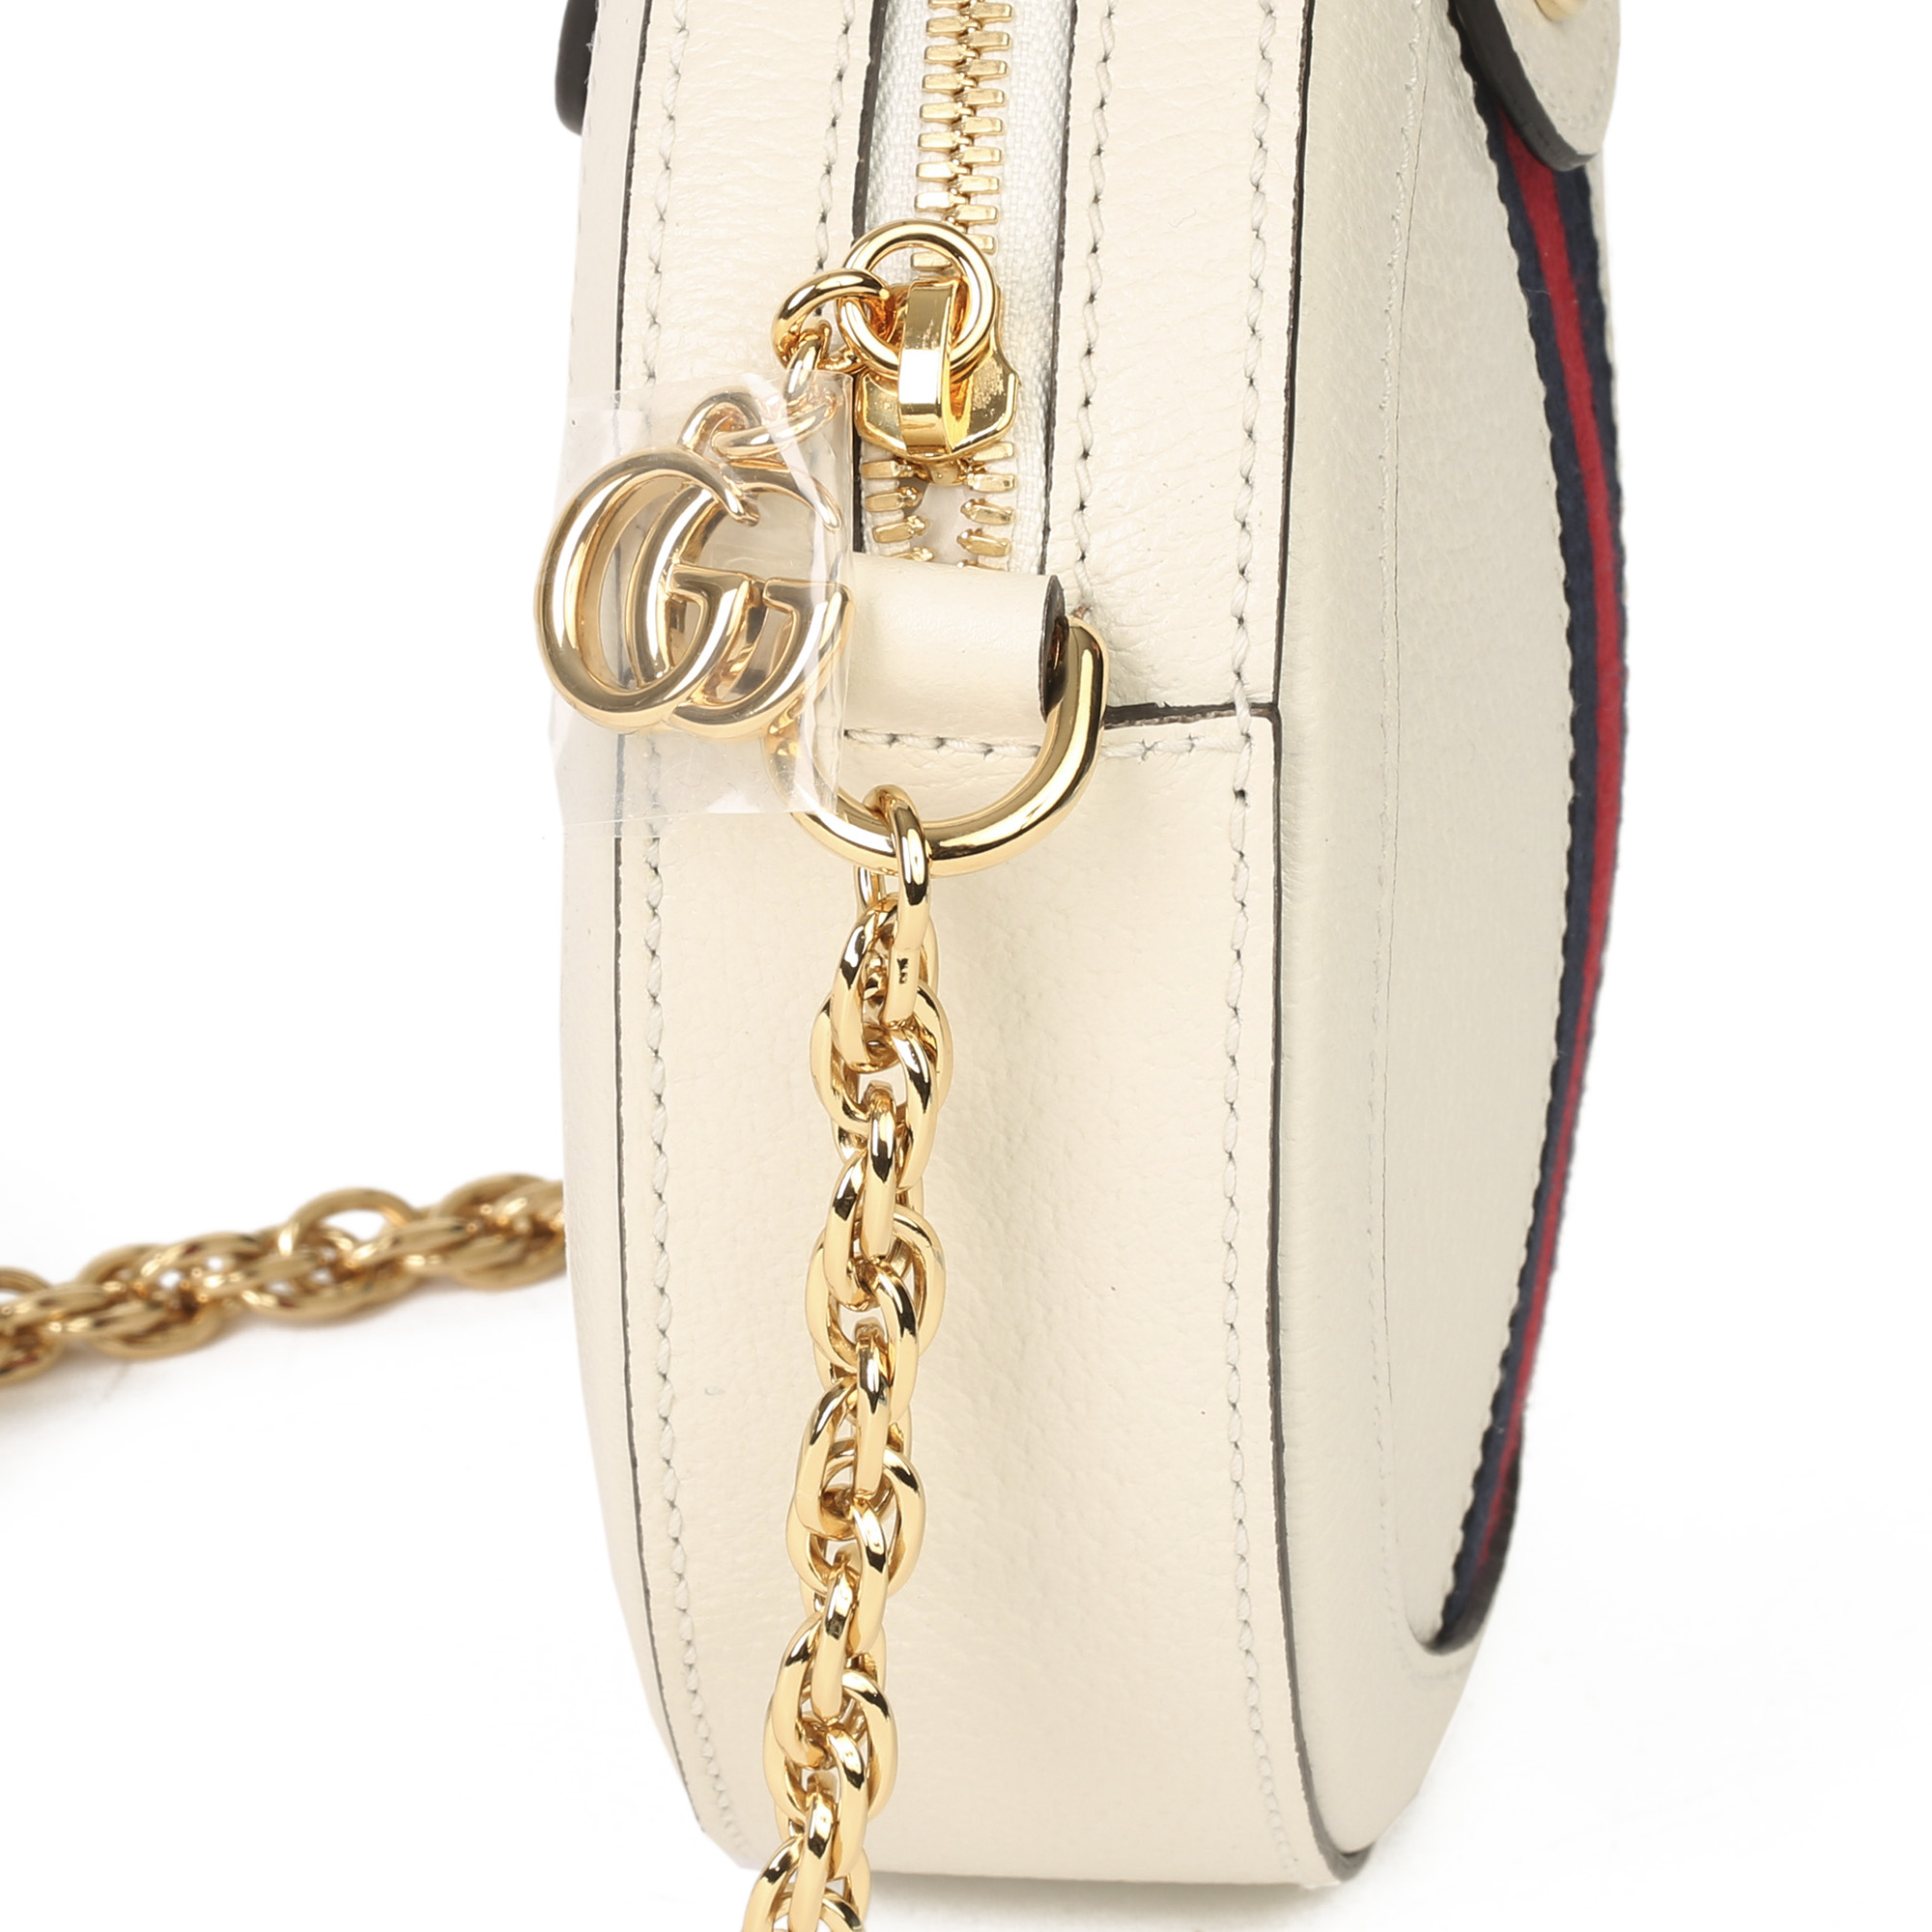 Gucci White Pigskin Leather Web Mini Round Orphidia Shoulder Bag - Image 6 of 11